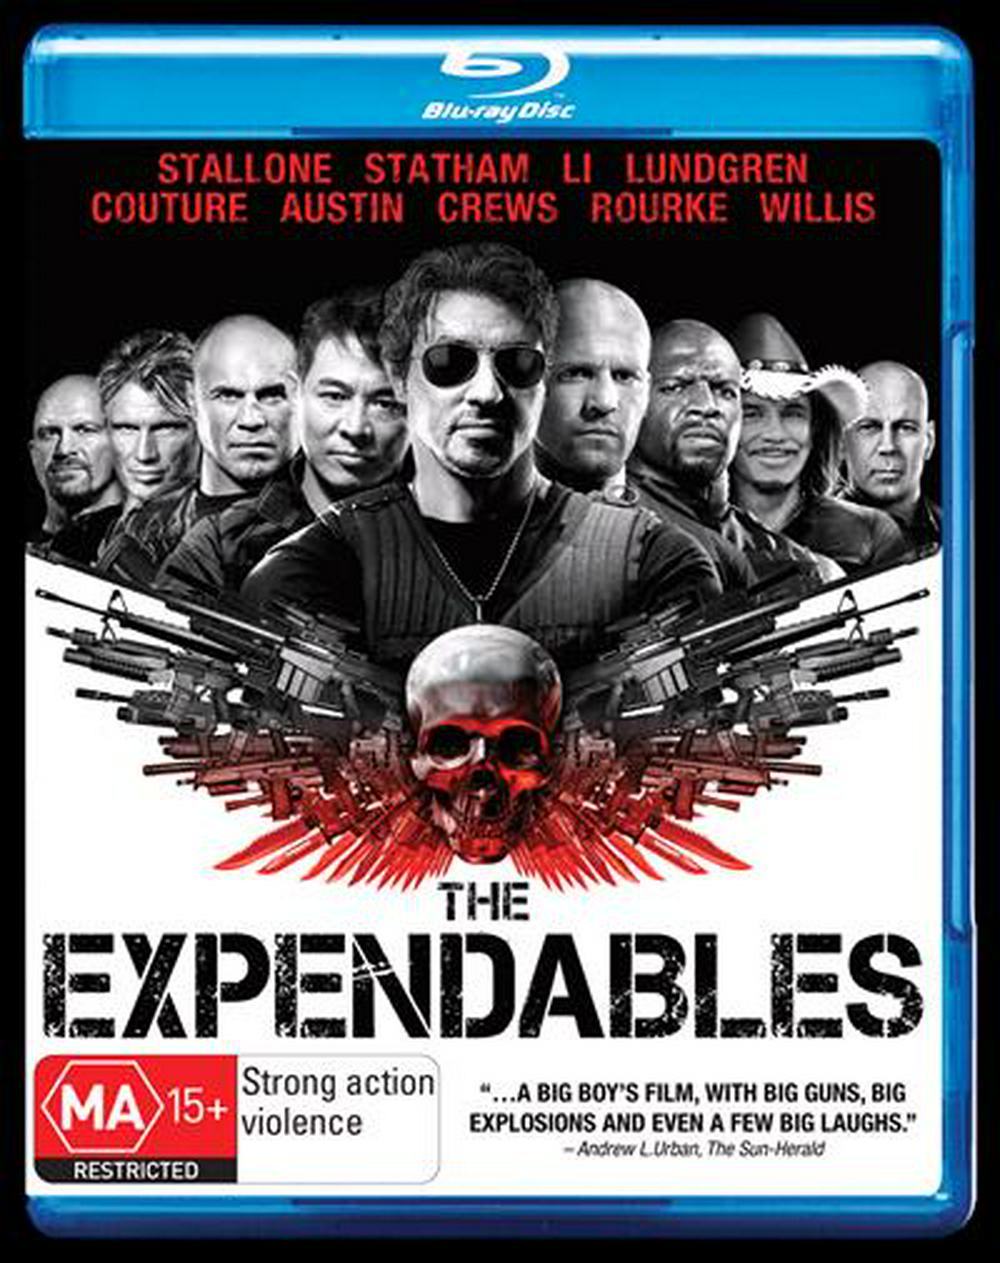 The.Expendables.EXTENDED.DC.2010.German.DL.1080p.BluRay.x264-ENCOUNTERS